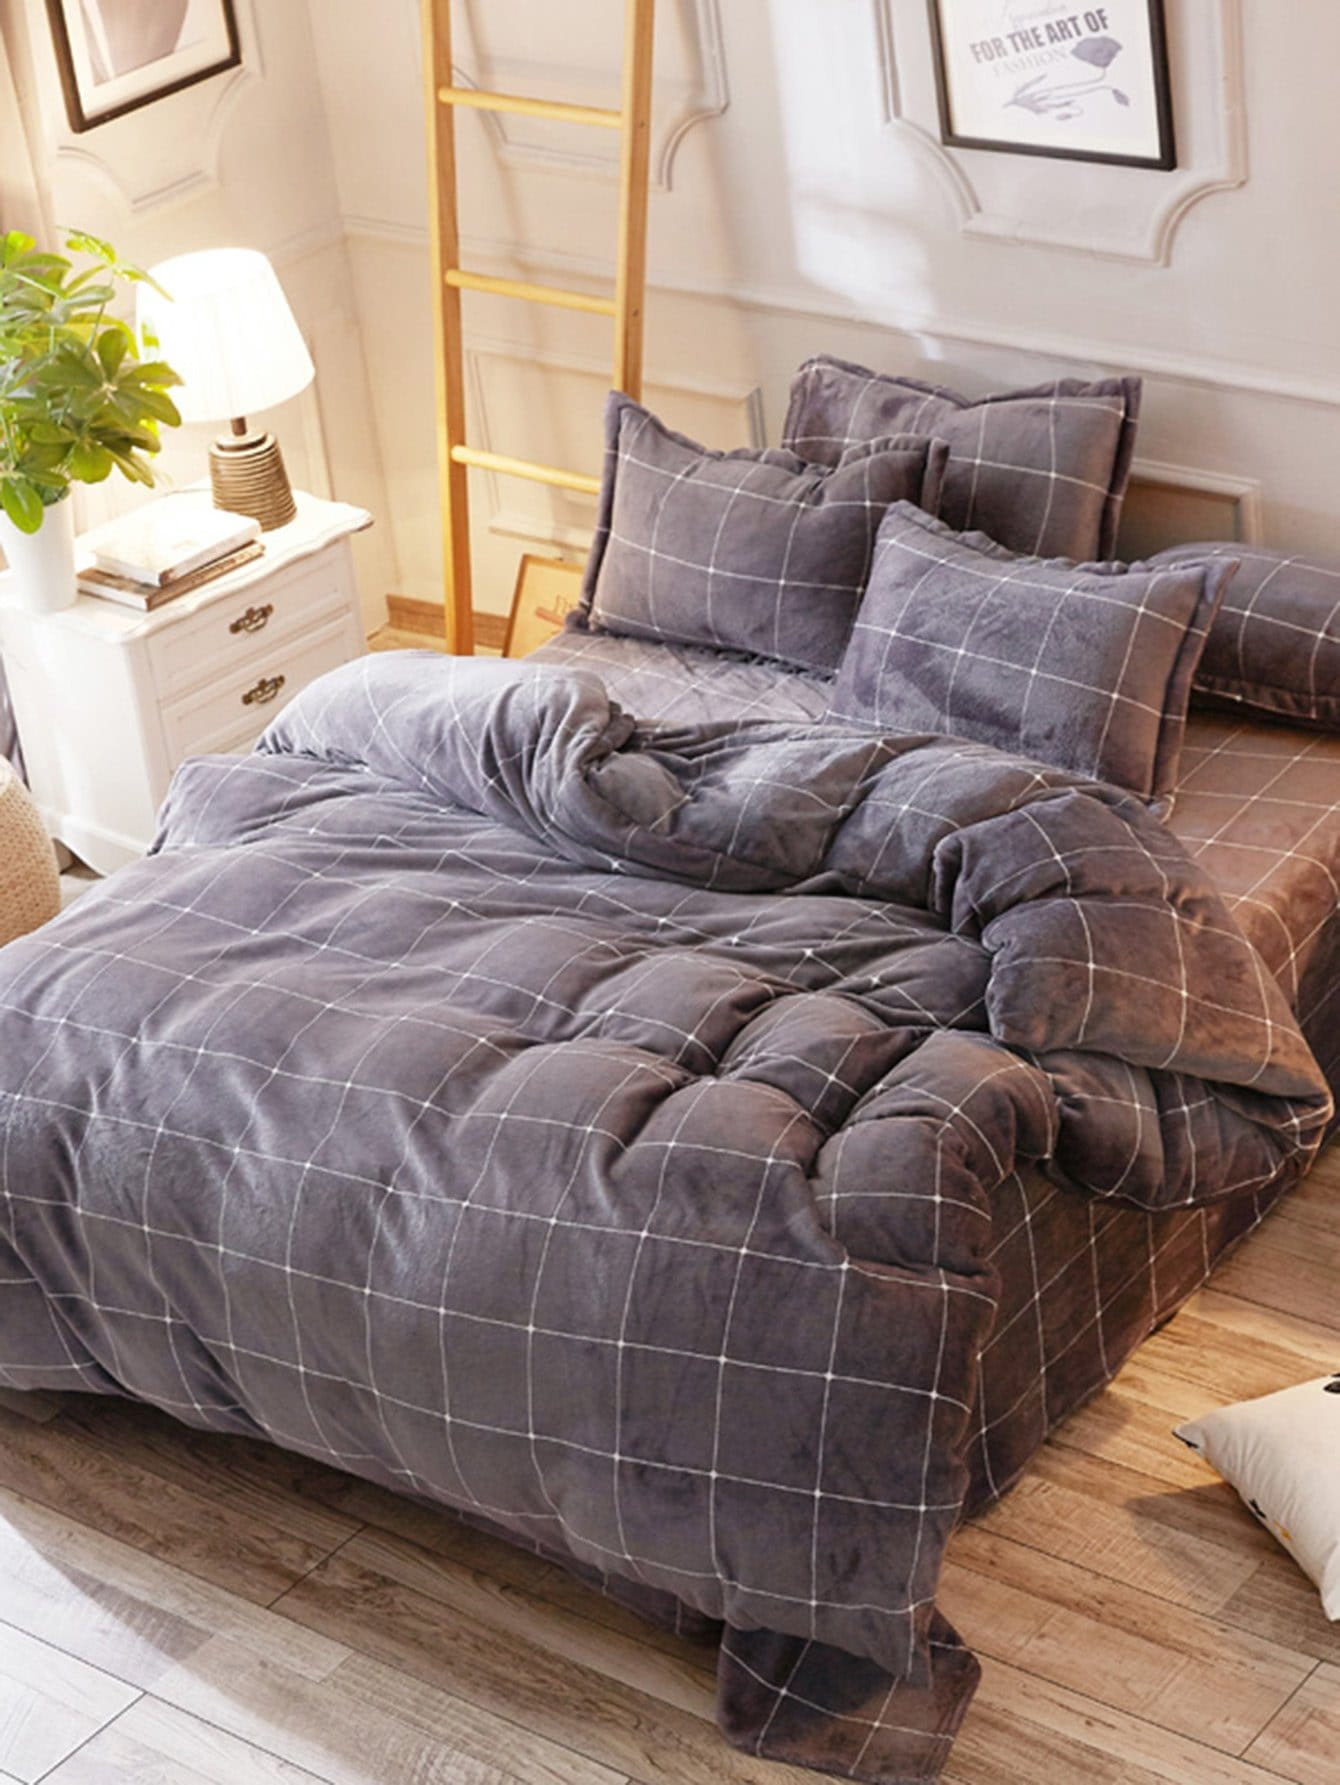 Grid Fuzzy Duvet Cover & Sheet & Sham Set grid duvet cover set